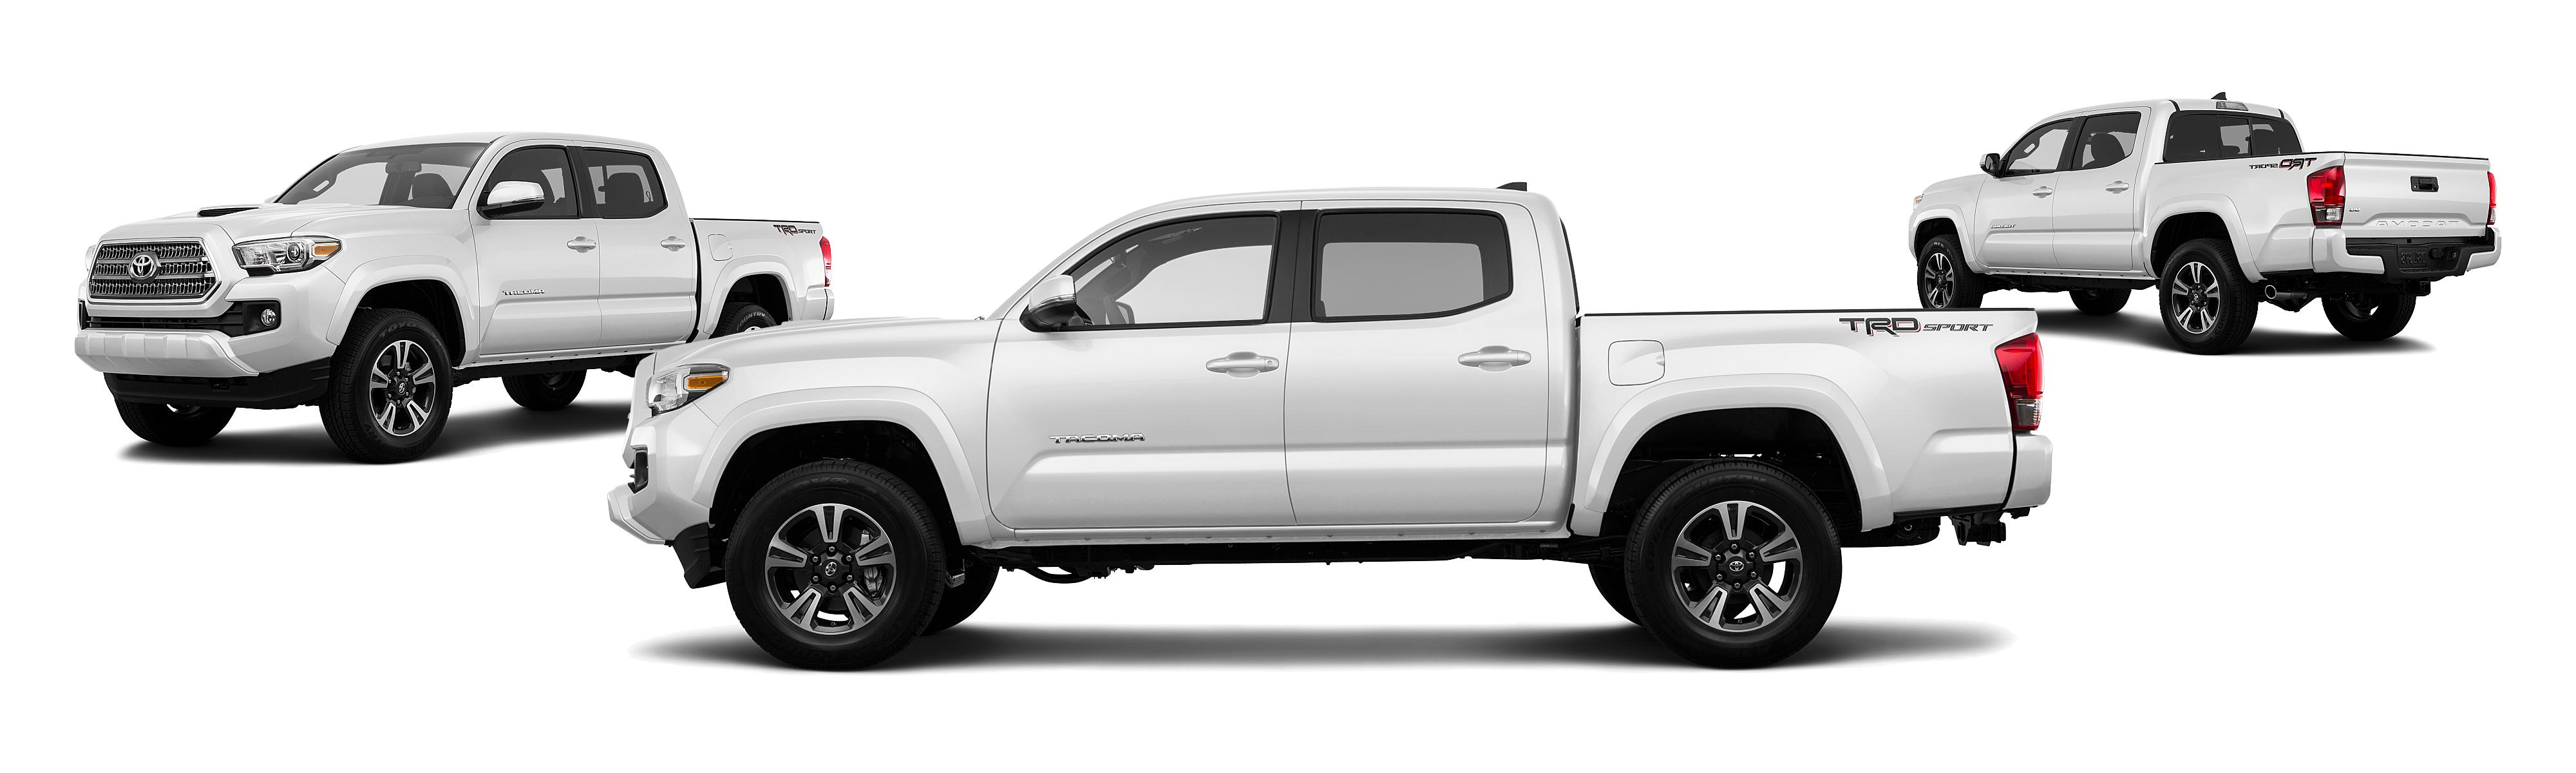 2016 Toyota Tacoma 4x4 Trd Sport 4dr Double Cab 6 1 Ft Lb Research Groovecar